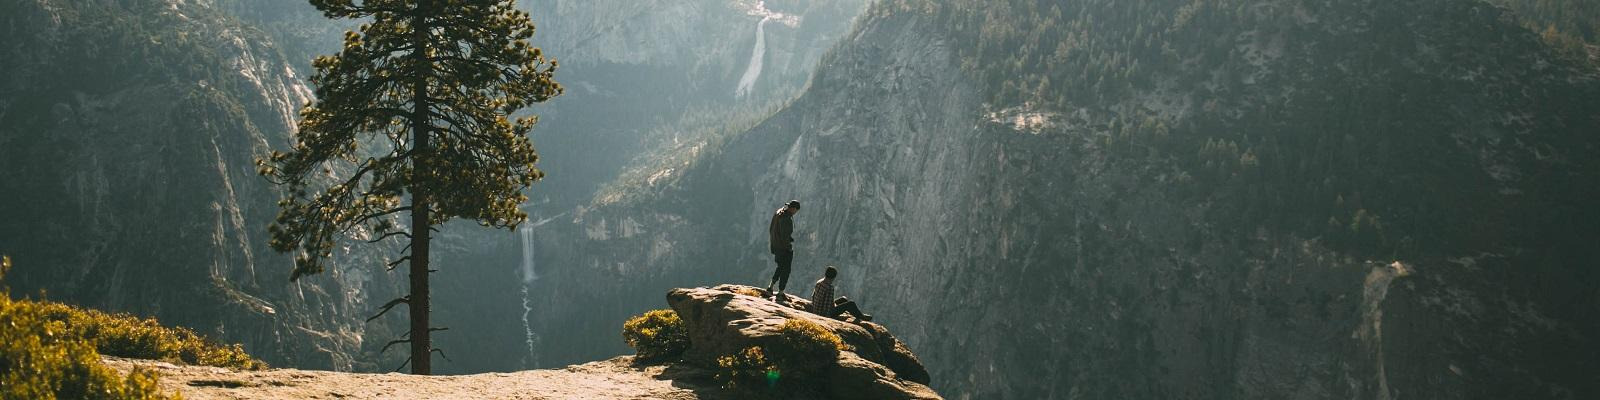 People on a rock overlooking Half Dome, Yosemite National Park, California